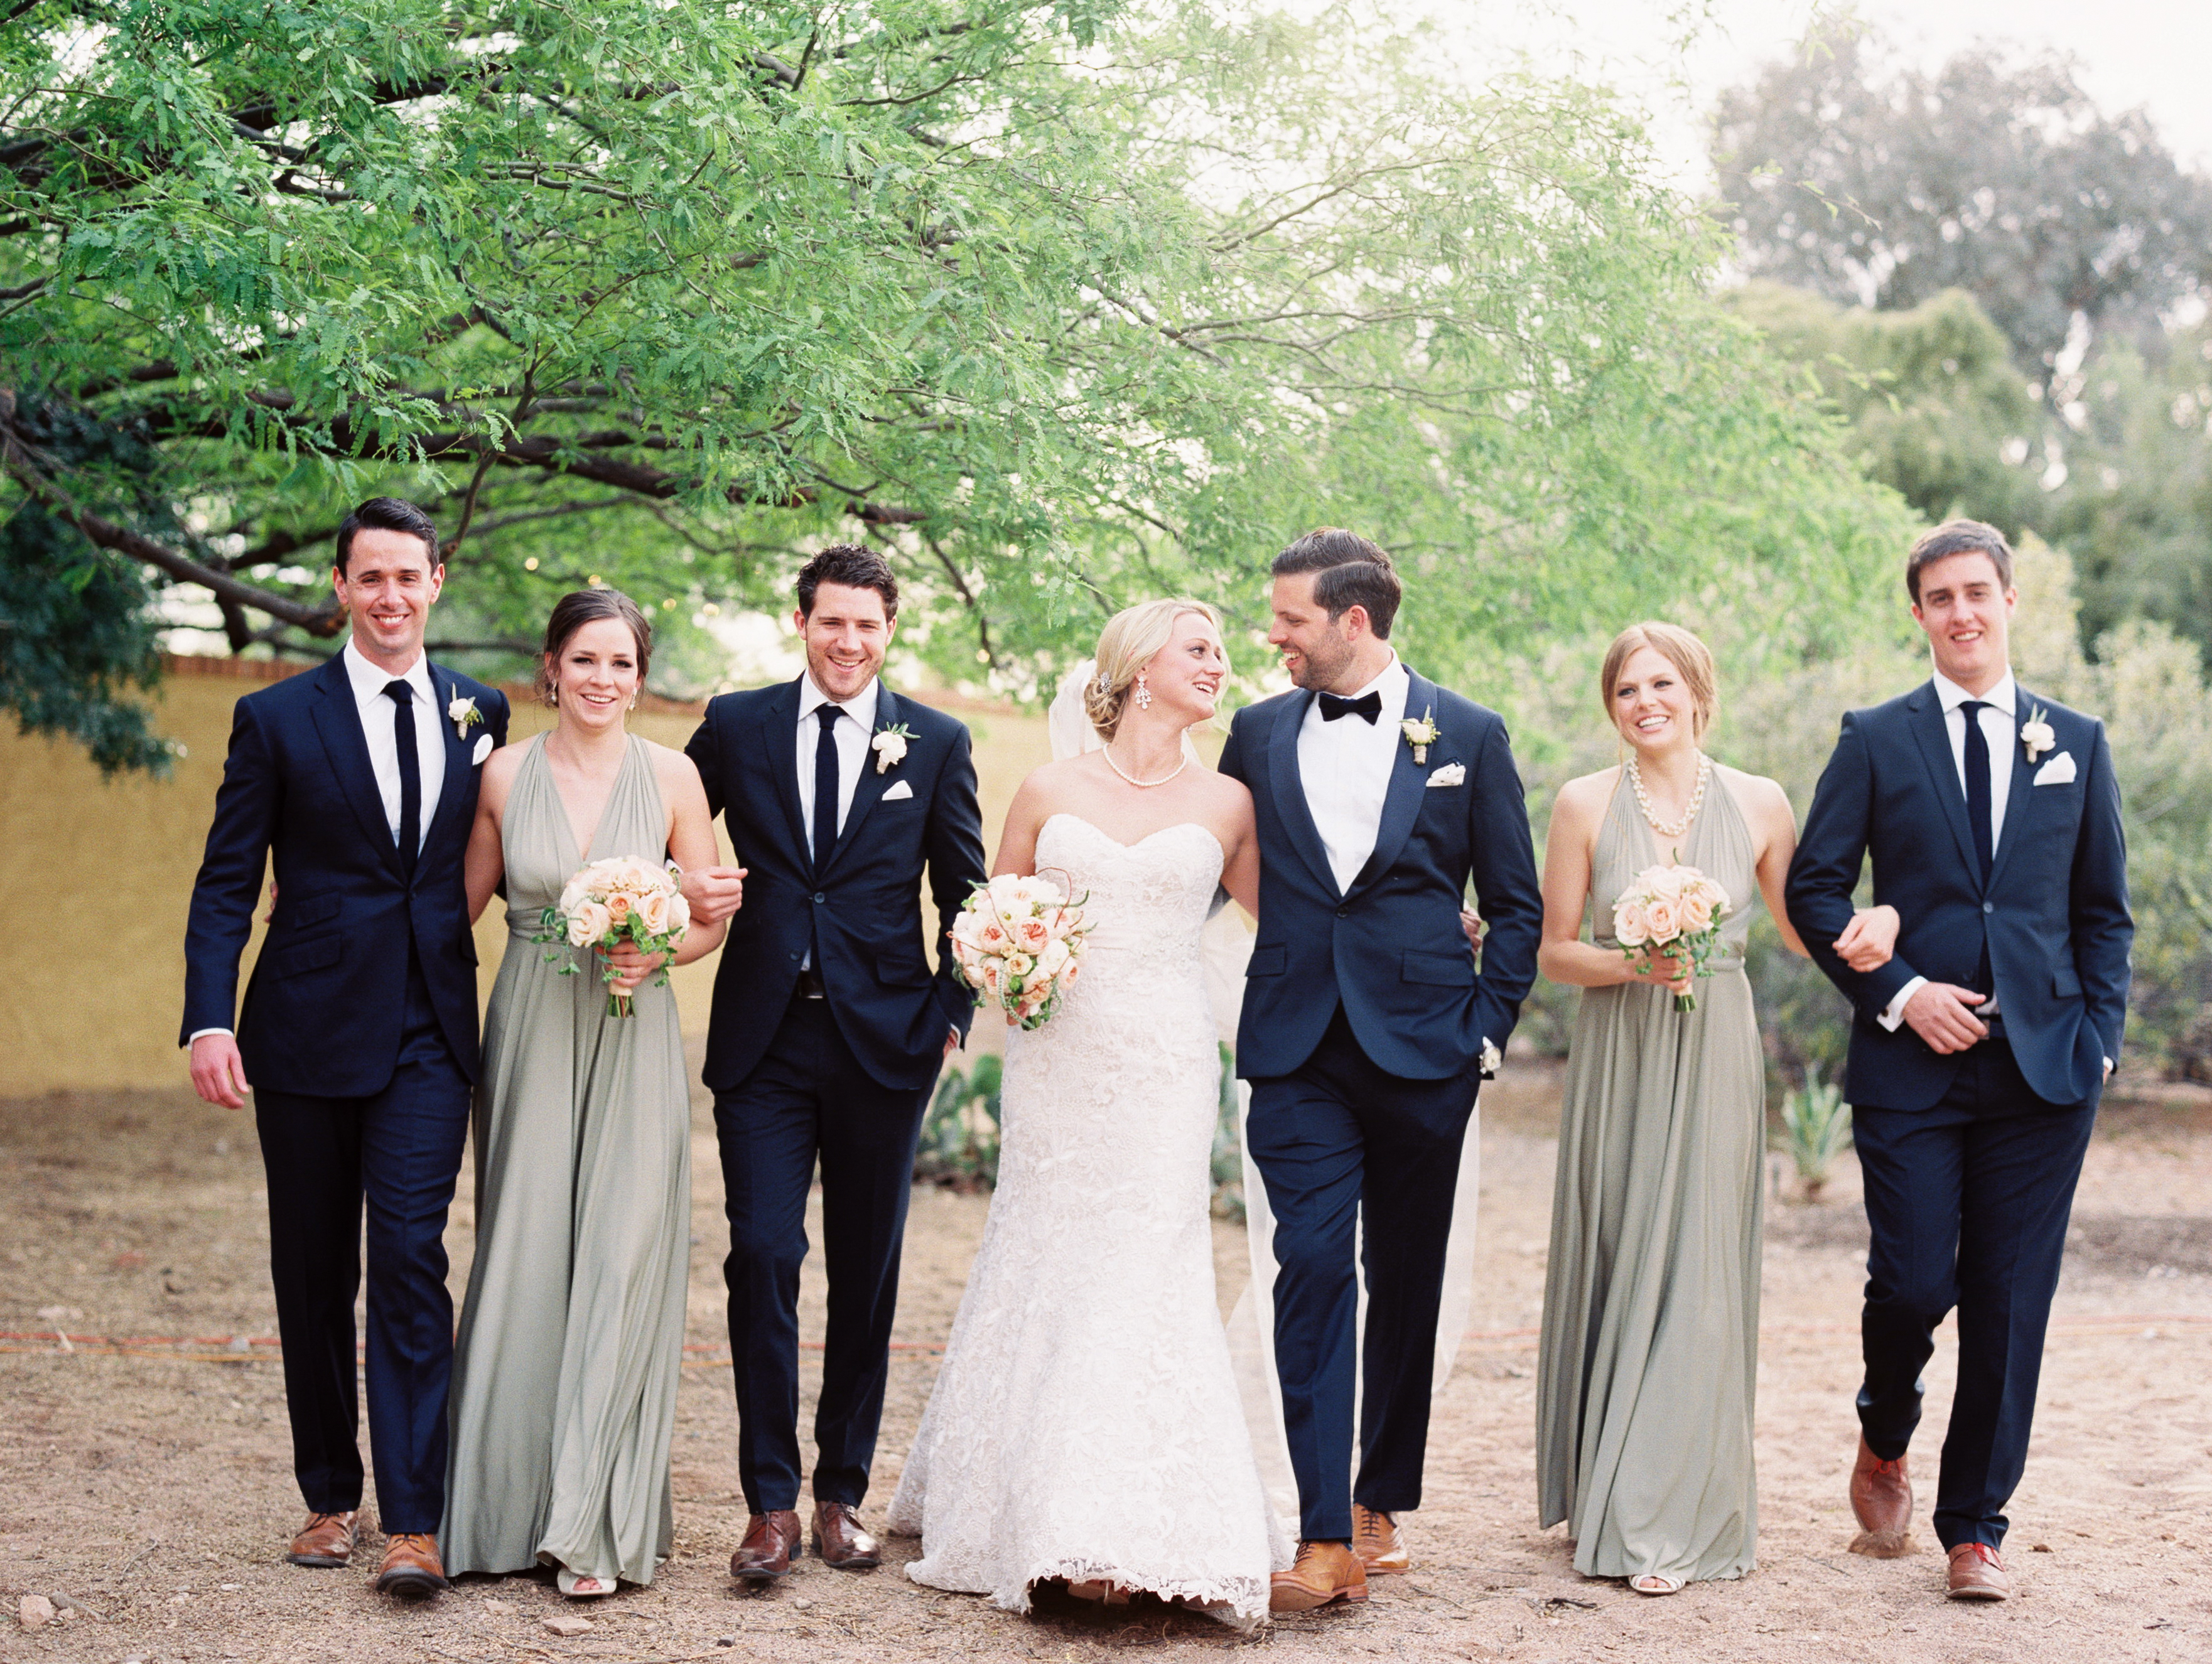 Blue Wedding Party Suits And Silver Elizabeth Anne Designs